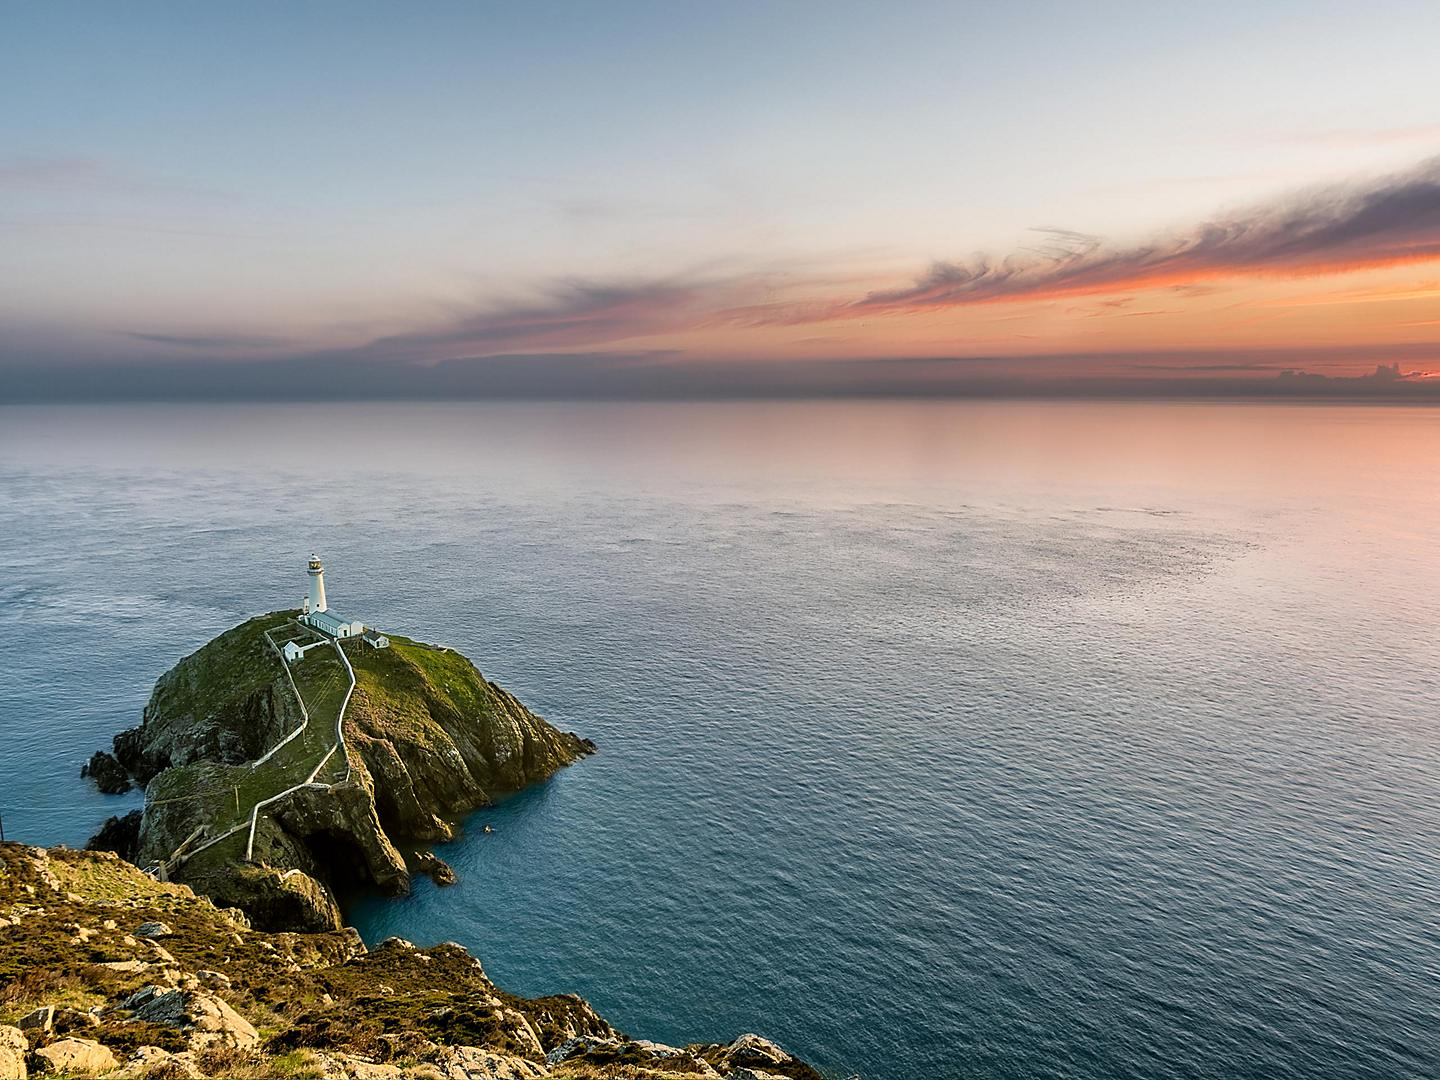 Holyhead, Wales, Aerial View of South Stack Lighthouse